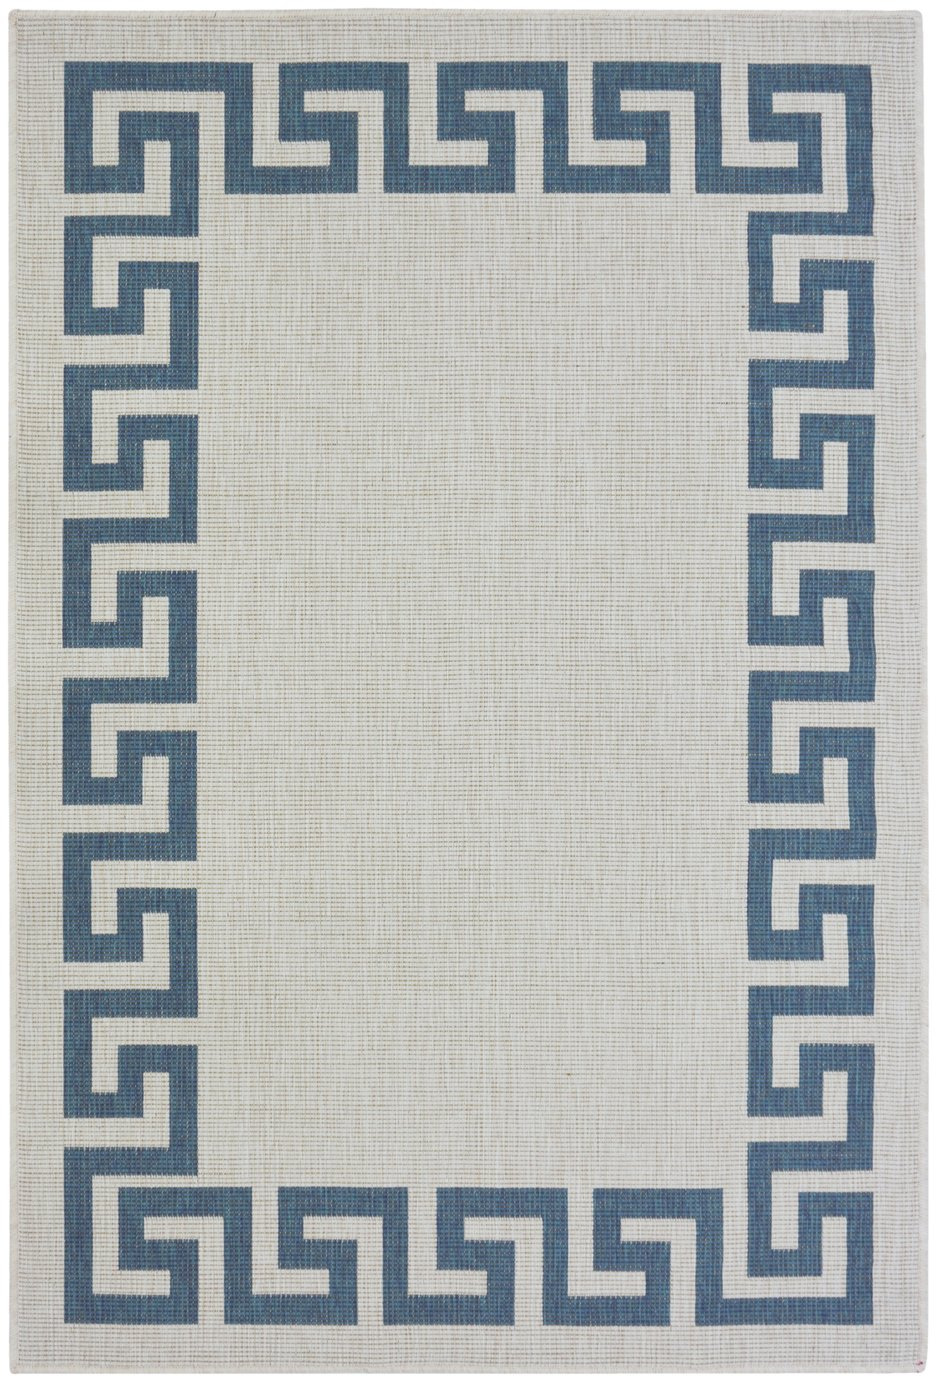 Antwerp Greek Key Rug